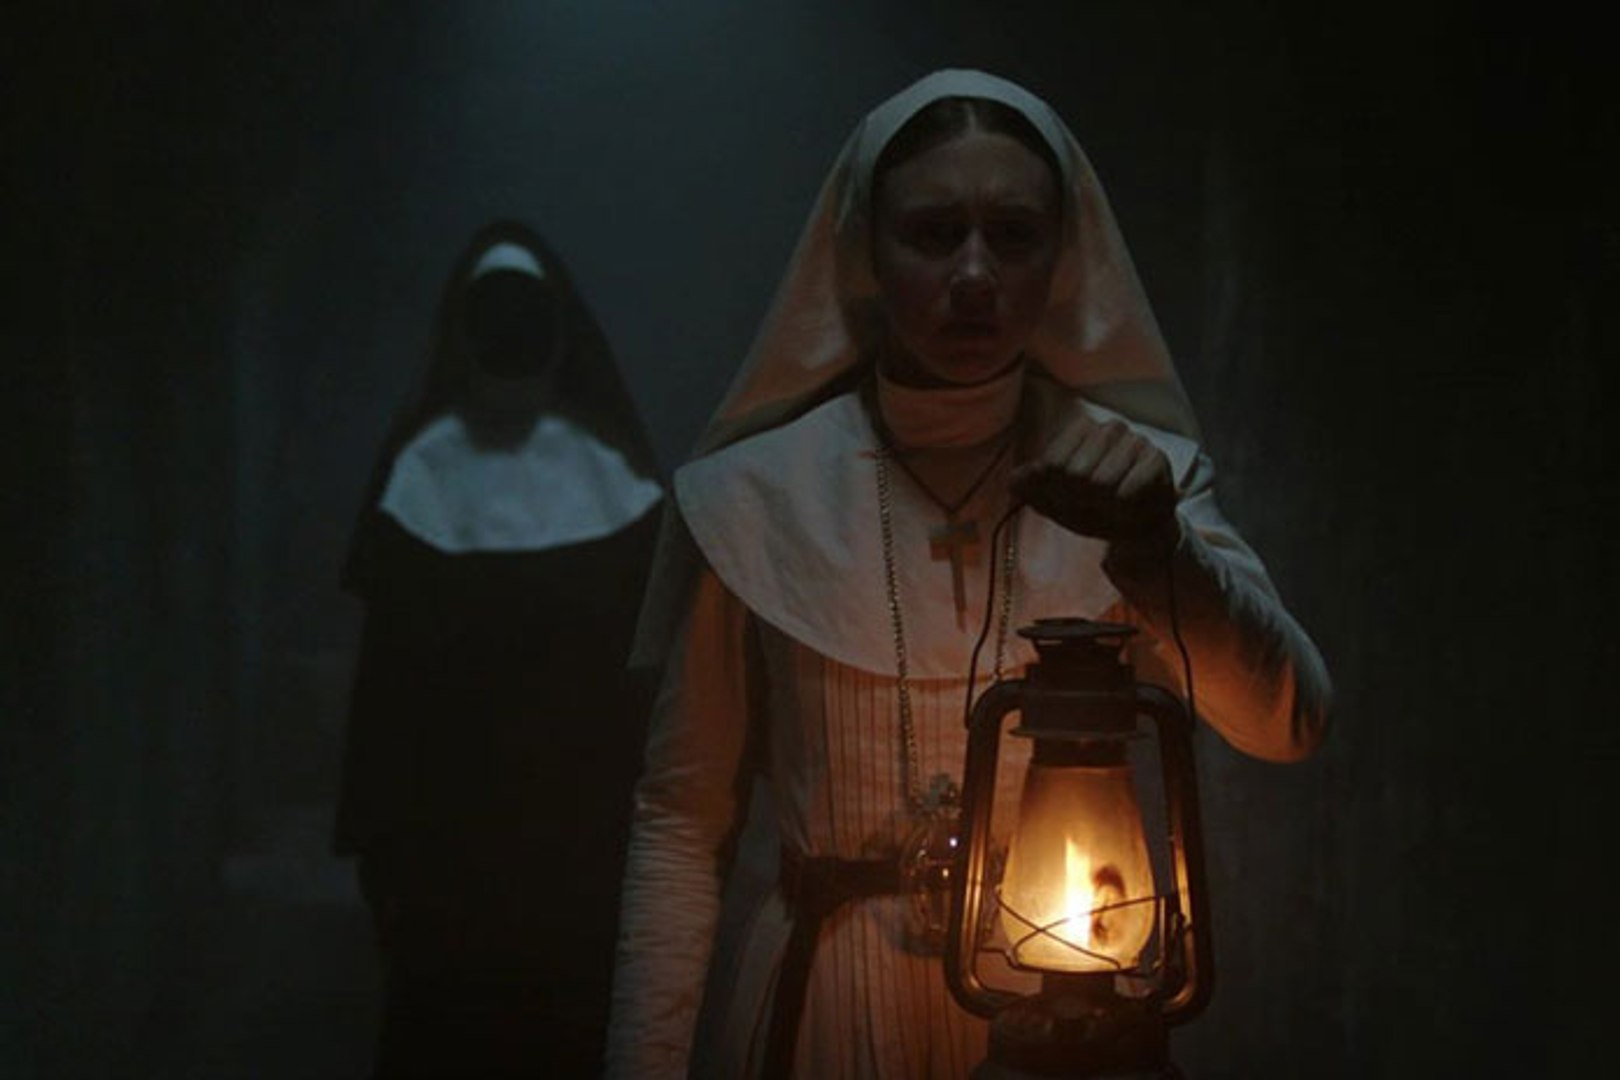 The Nun - Official Trailer - Horror Conjuring spinoff vost